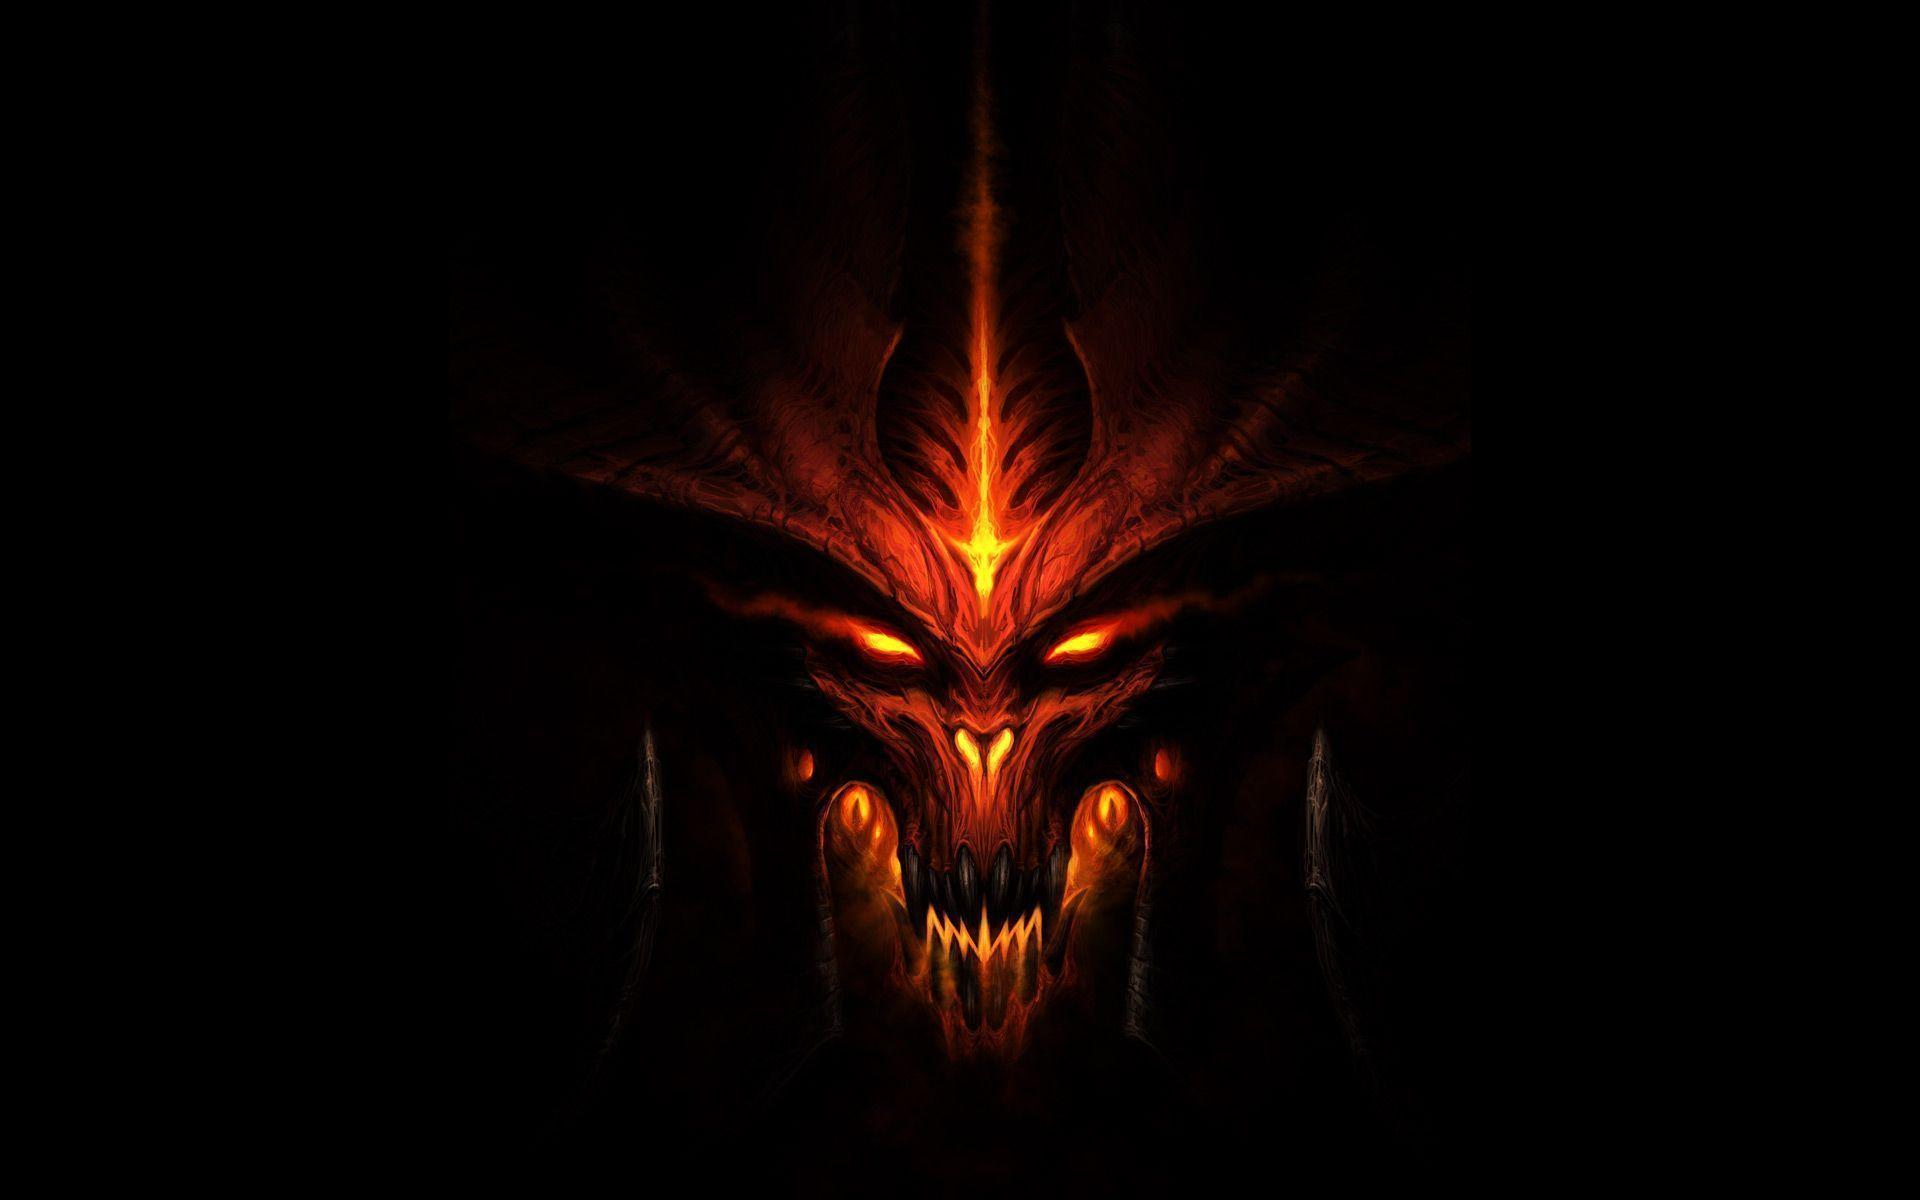 Devil Wallpapers - Full HD wallpaper search